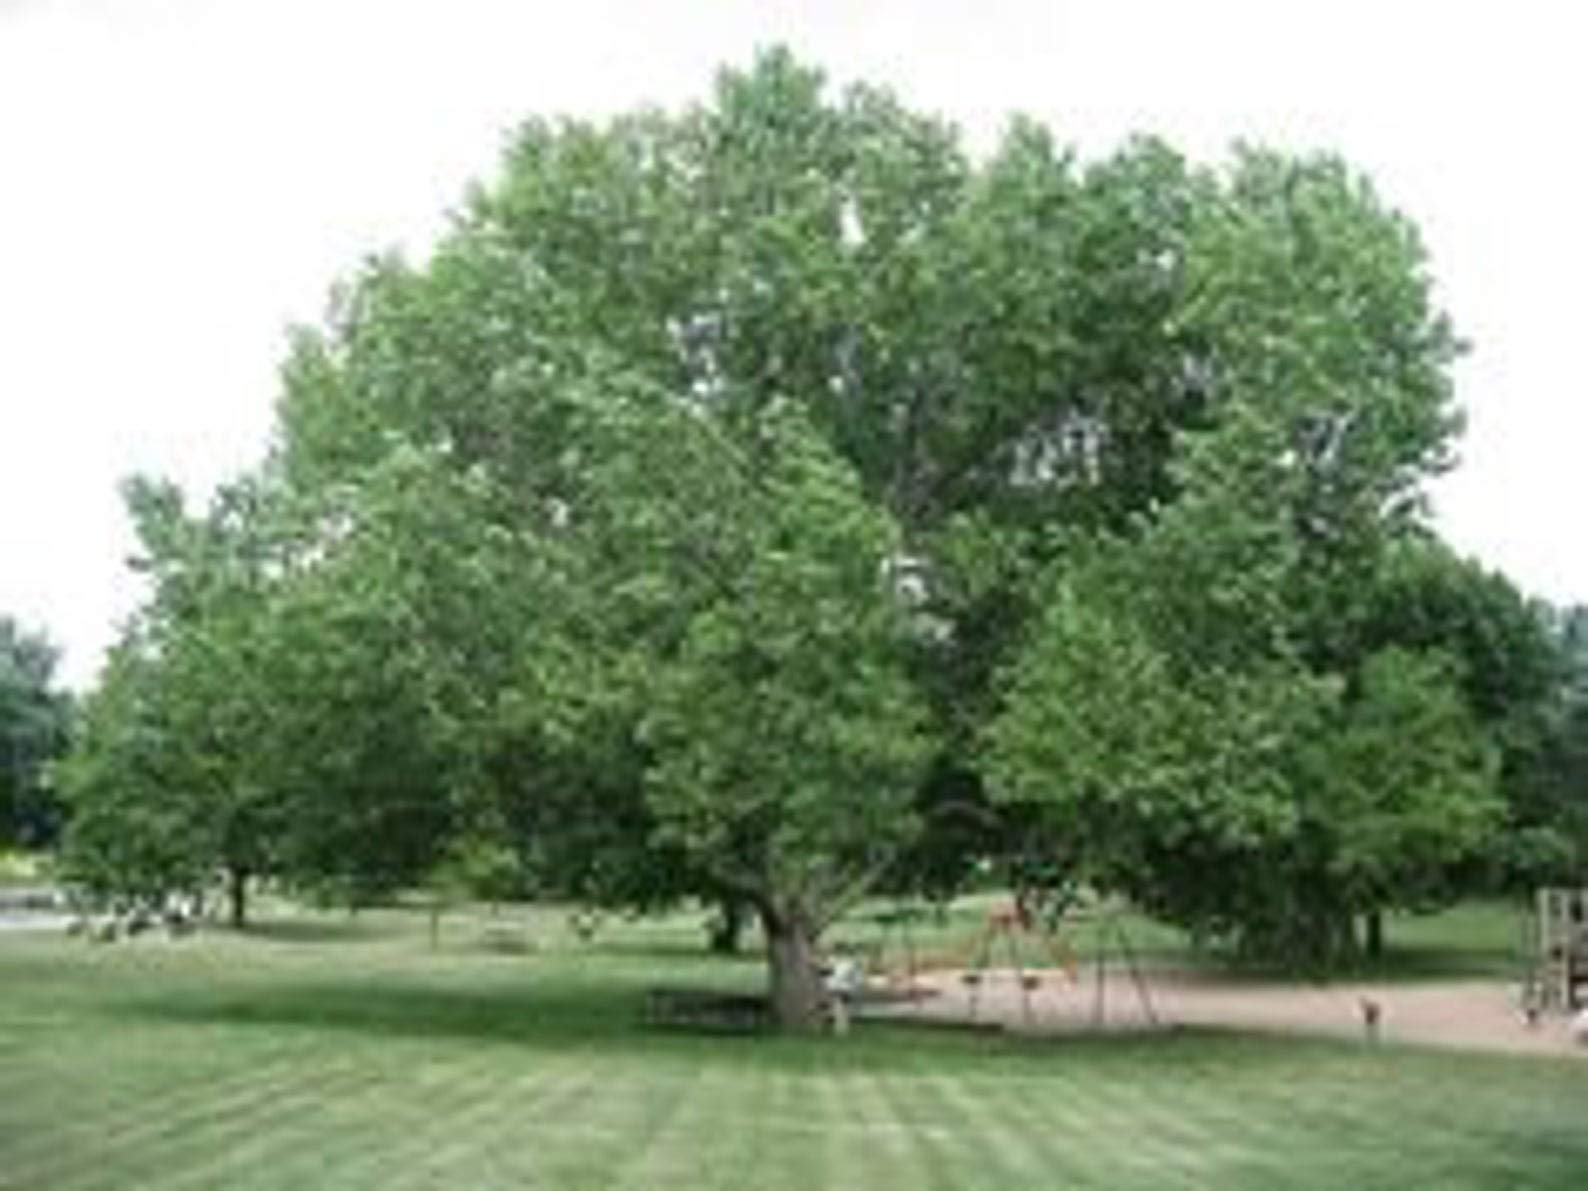 Cottonwood Tree, 1 Gallon Potted Plant, Populus Fremontii, Healthy Plant, Strong Roots, Shade Tree, Strong Branches, Beautiful Fall Colors (No California Washington, Oregon, Colorado, Idaho, Nevada)